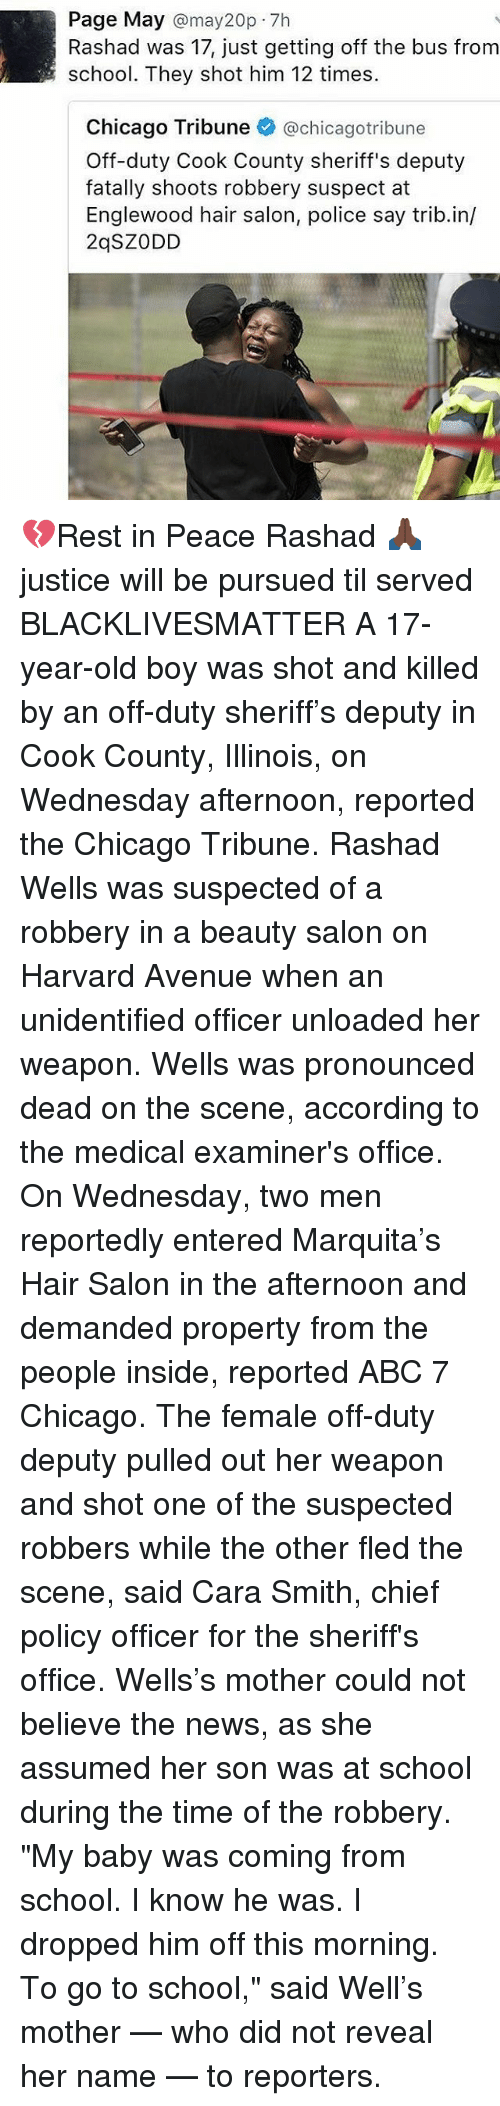 """hair salon: Page May  may20p.7h  Rashad was 17, just getting off the bus from  school. They shot him 12 times.  Chicago Tribune  @chicago tribune  Off-duty Cook County sheriff's deputy  fatally shoots robbery suspect at  Englewood hair salon, police say trib.in/  2qSZ ODD 💔Rest in Peace Rashad 🙏🏿 justice will be pursued til served BLACKLIVESMATTER A 17-year-old boy was shot and killed by an off-duty sheriff's deputy in Cook County, Illinois, on Wednesday afternoon, reported the Chicago Tribune. Rashad Wells was suspected of a robbery in a beauty salon on Harvard Avenue when an unidentified officer unloaded her weapon. Wells was pronounced dead on the scene, according to the medical examiner's office. On Wednesday, two men reportedly entered Marquita's Hair Salon in the afternoon and demanded property from the people inside, reported ABC 7 Chicago. The female off-duty deputy pulled out her weapon and shot one of the suspected robbers while the other fled the scene, said Cara Smith, chief policy officer for the sheriff's office. Wells's mother could not believe the news, as she assumed her son was at school during the time of the robbery. """"My baby was coming from school. I know he was. I dropped him off this morning. To go to school,"""" said Well's mother — who did not reveal her name — to reporters."""